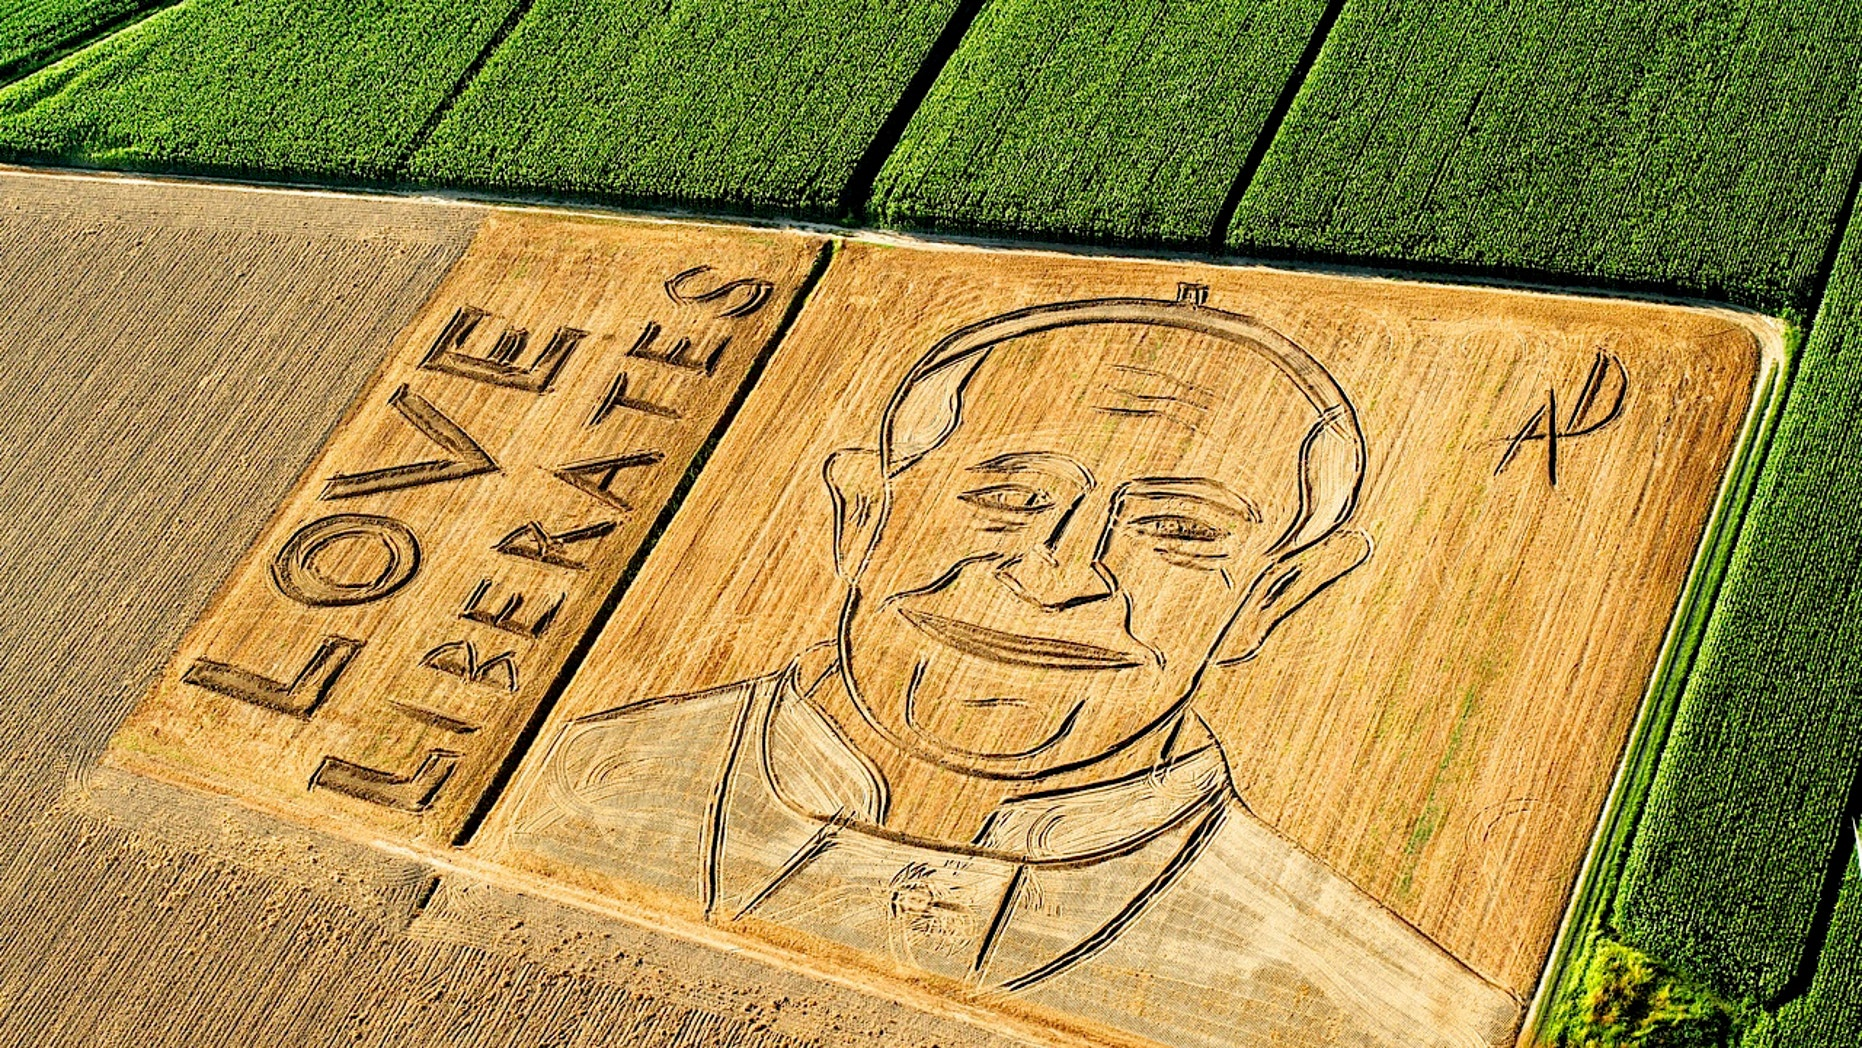 A giant portrait of Pope Francis by artist Dario Gambarini appeared near Verona, northern Italy, on Sept. 2, 2013.